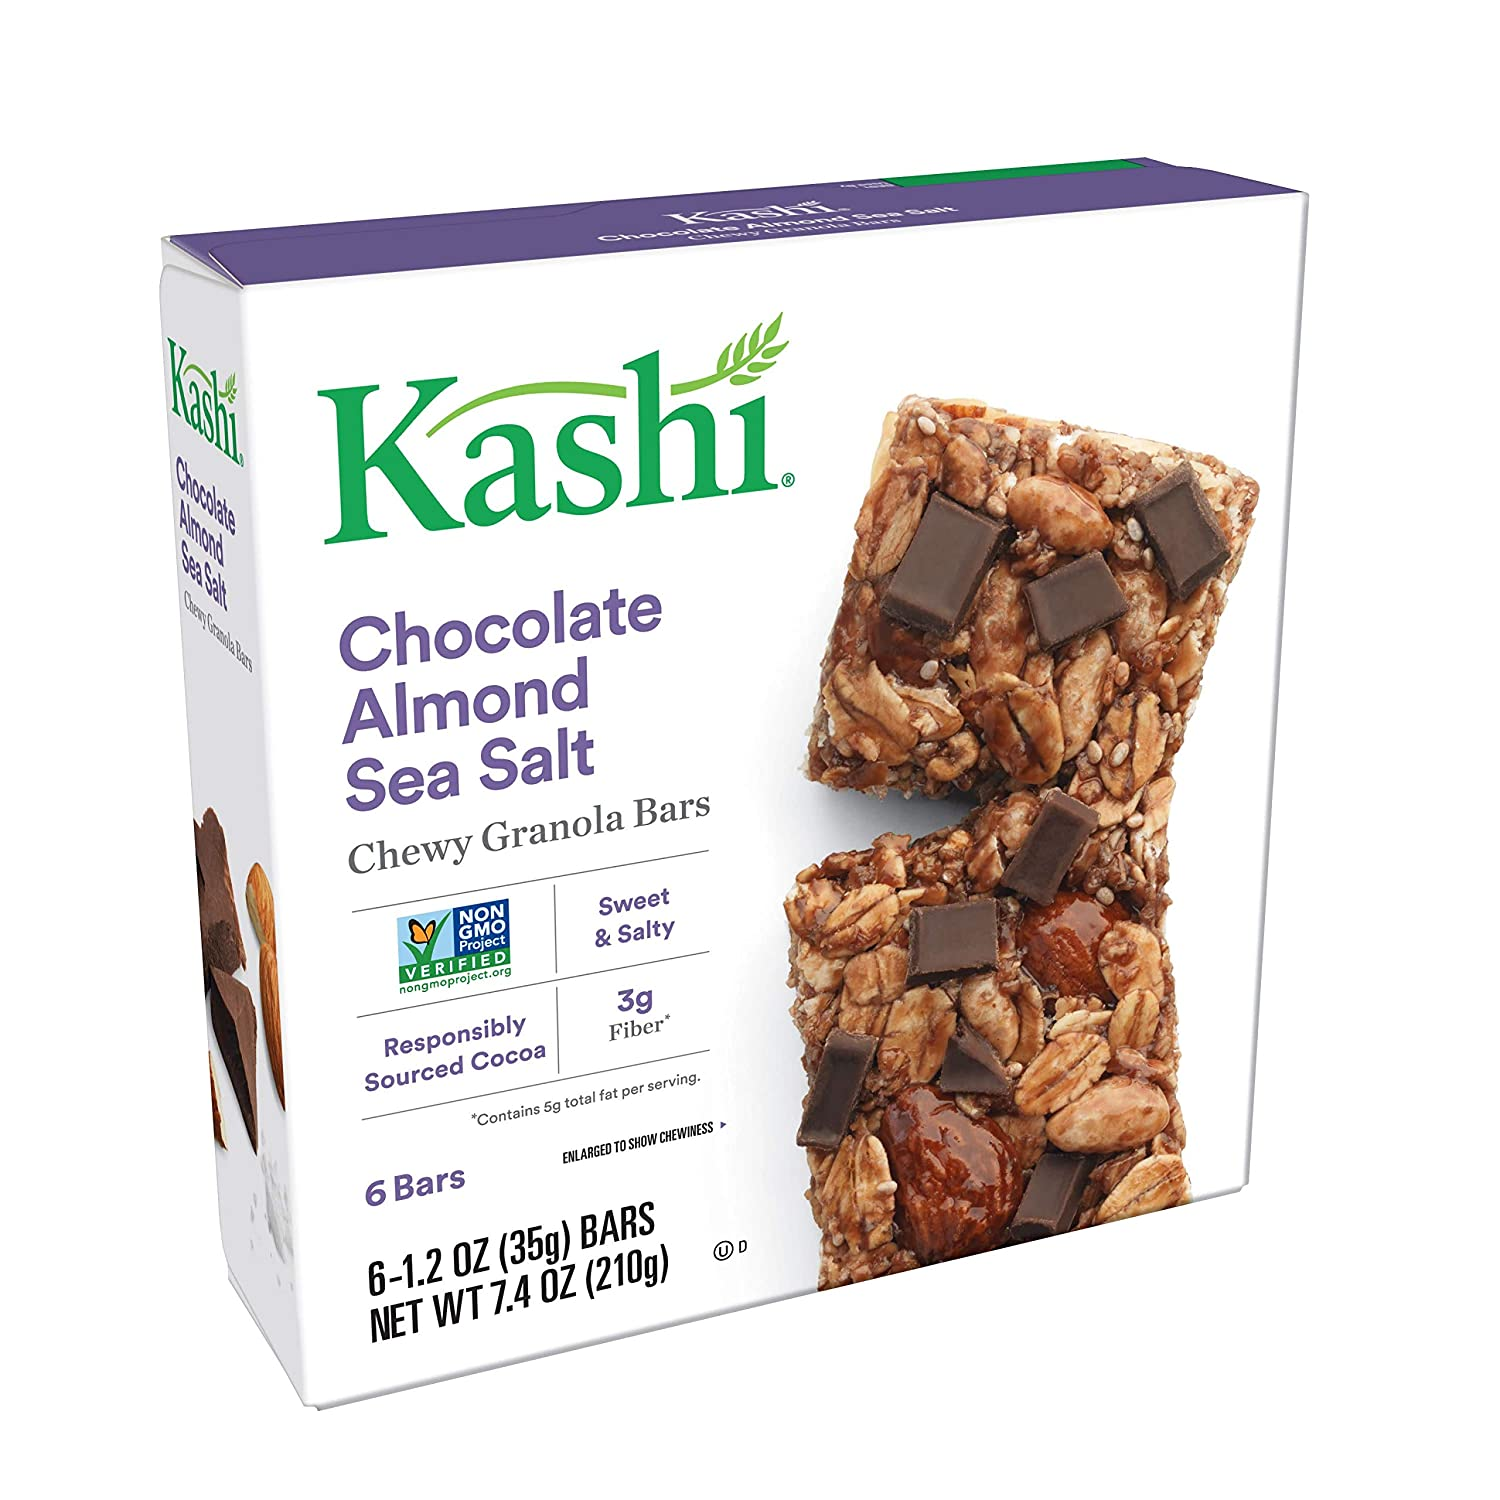 Kashi Chewy Granola Bars Chocolate Almond Salt Sea with Animer trend rank and price revision Chi